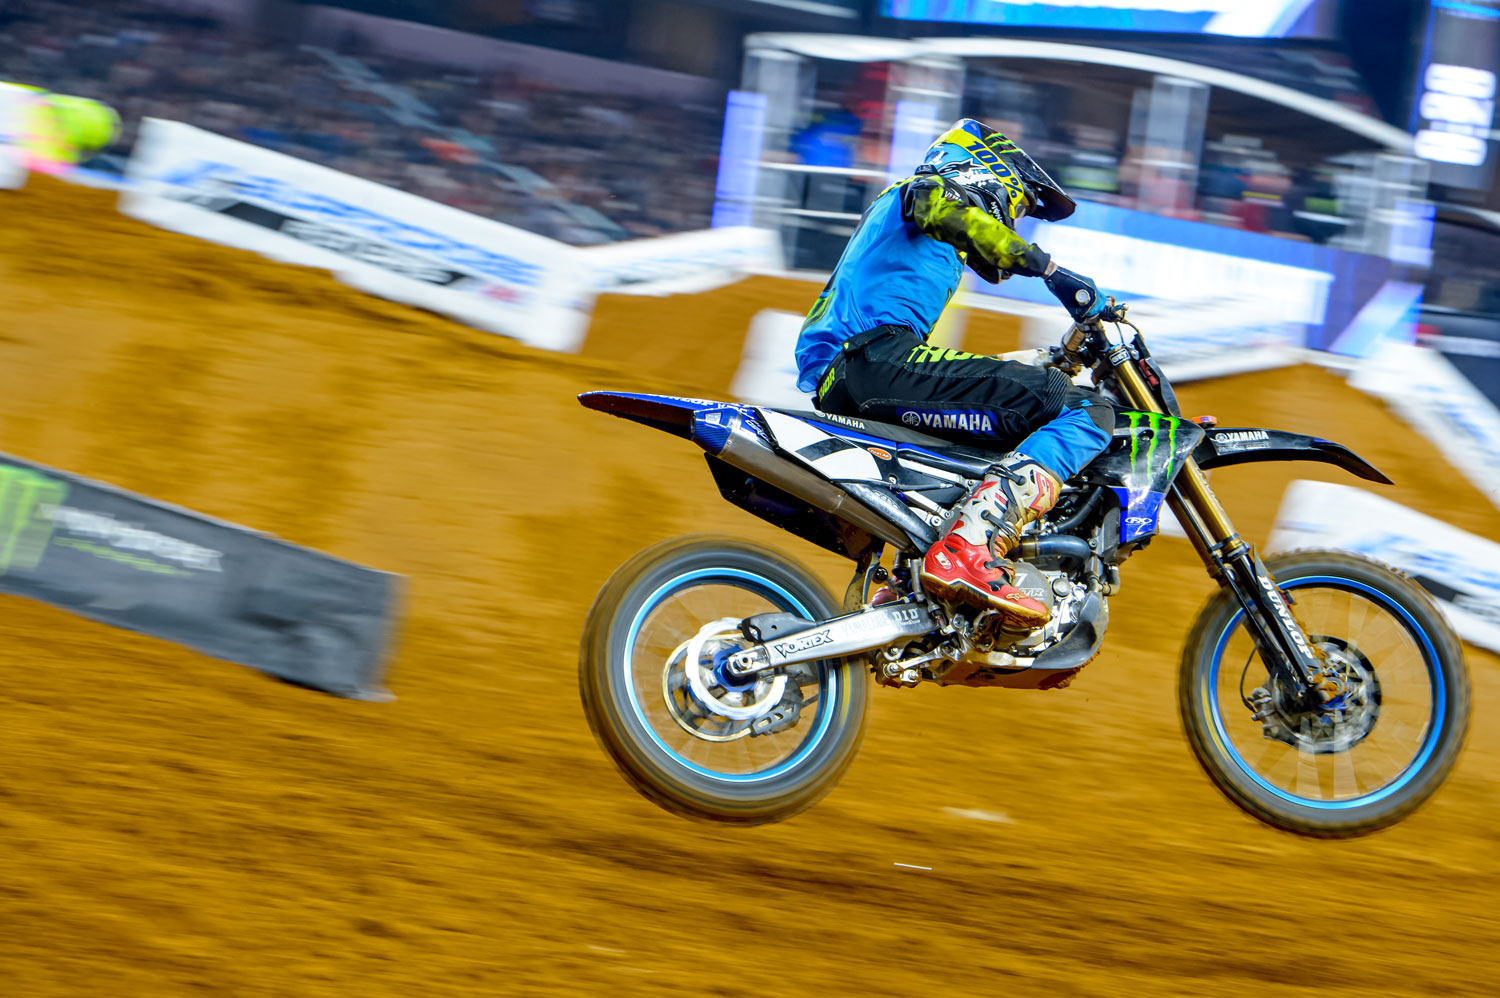 A downed rider at the start of the heat race forced Plessinger back to 14th but he worked his way to finish sixth. In the main, he got pinched off on the start and slowly worked his way back to finish ninth.